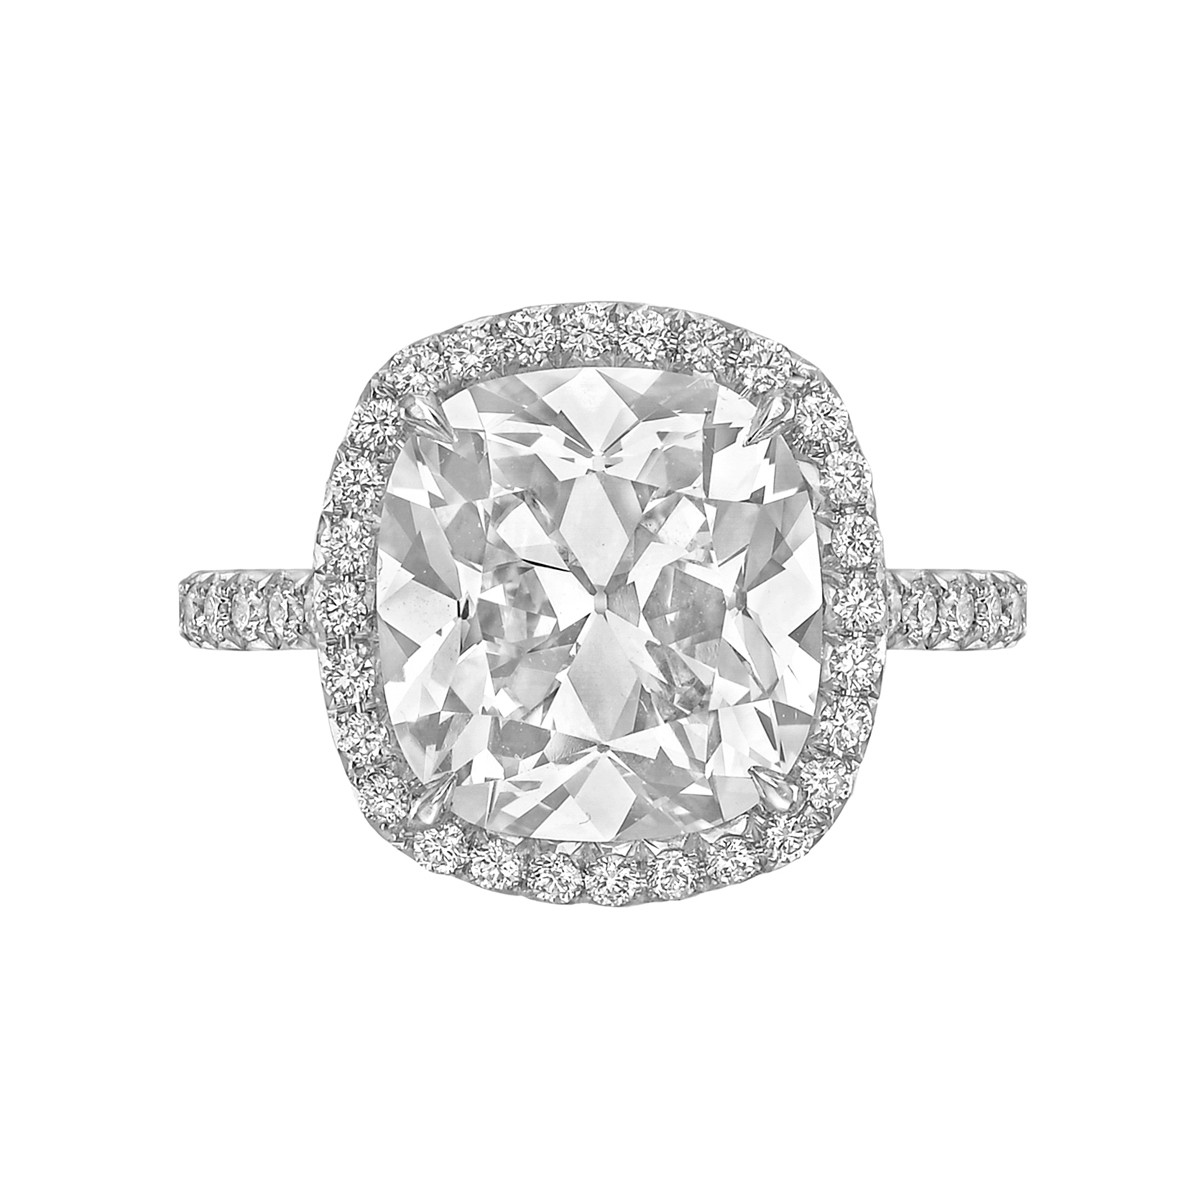 5.08 Carat Cushion-Cut Diamond Ring